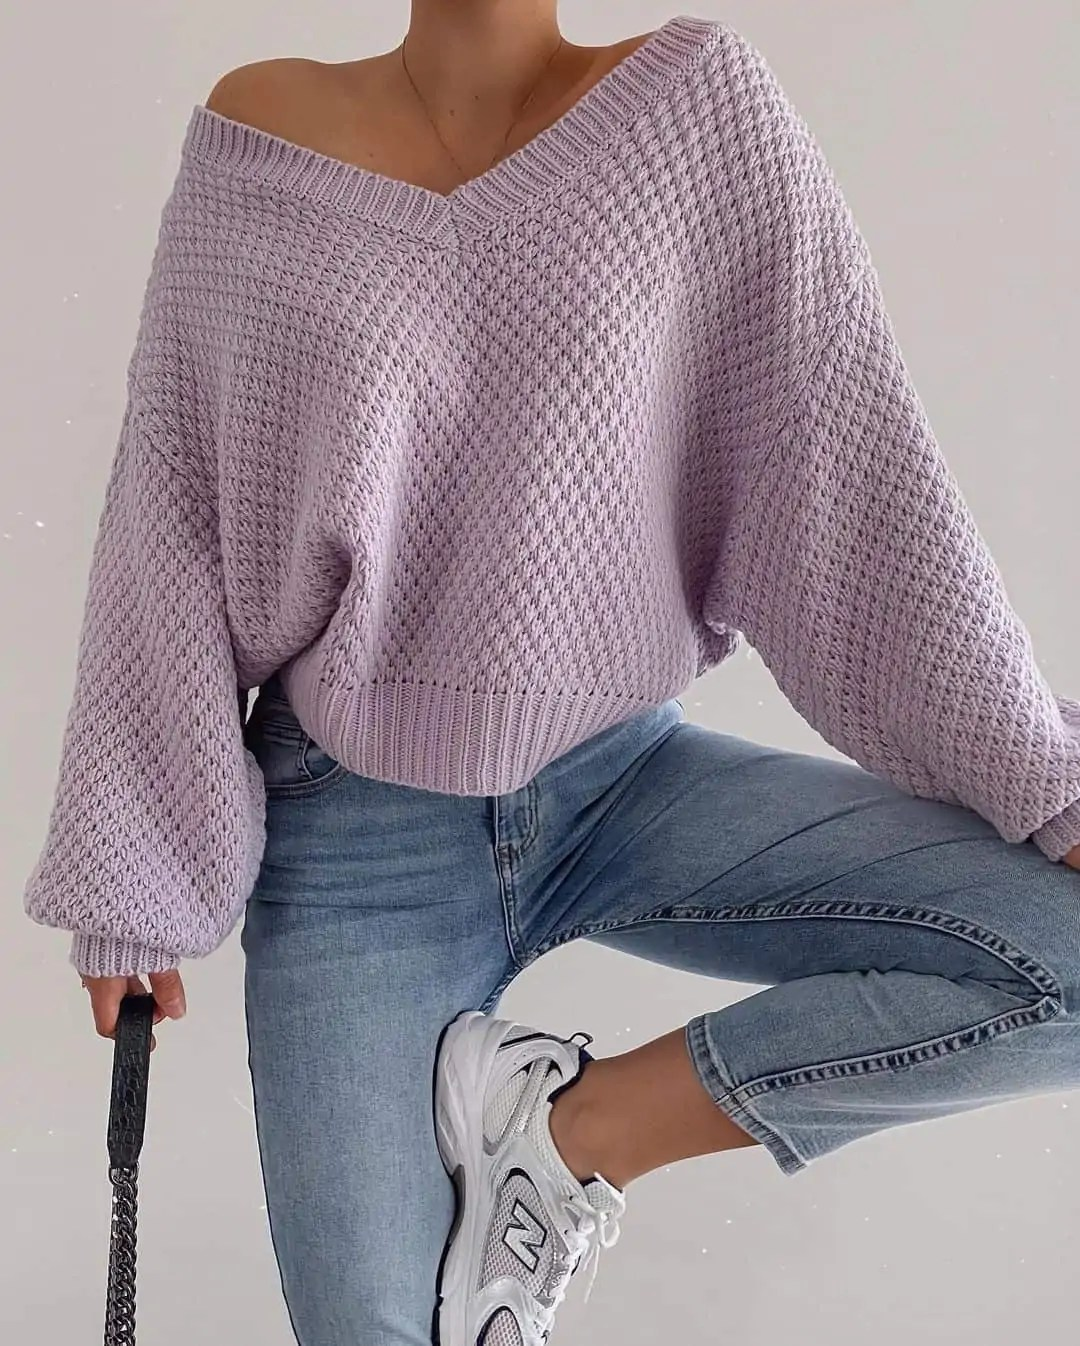 100+ Outfits to Inspire your next shopping haul 205